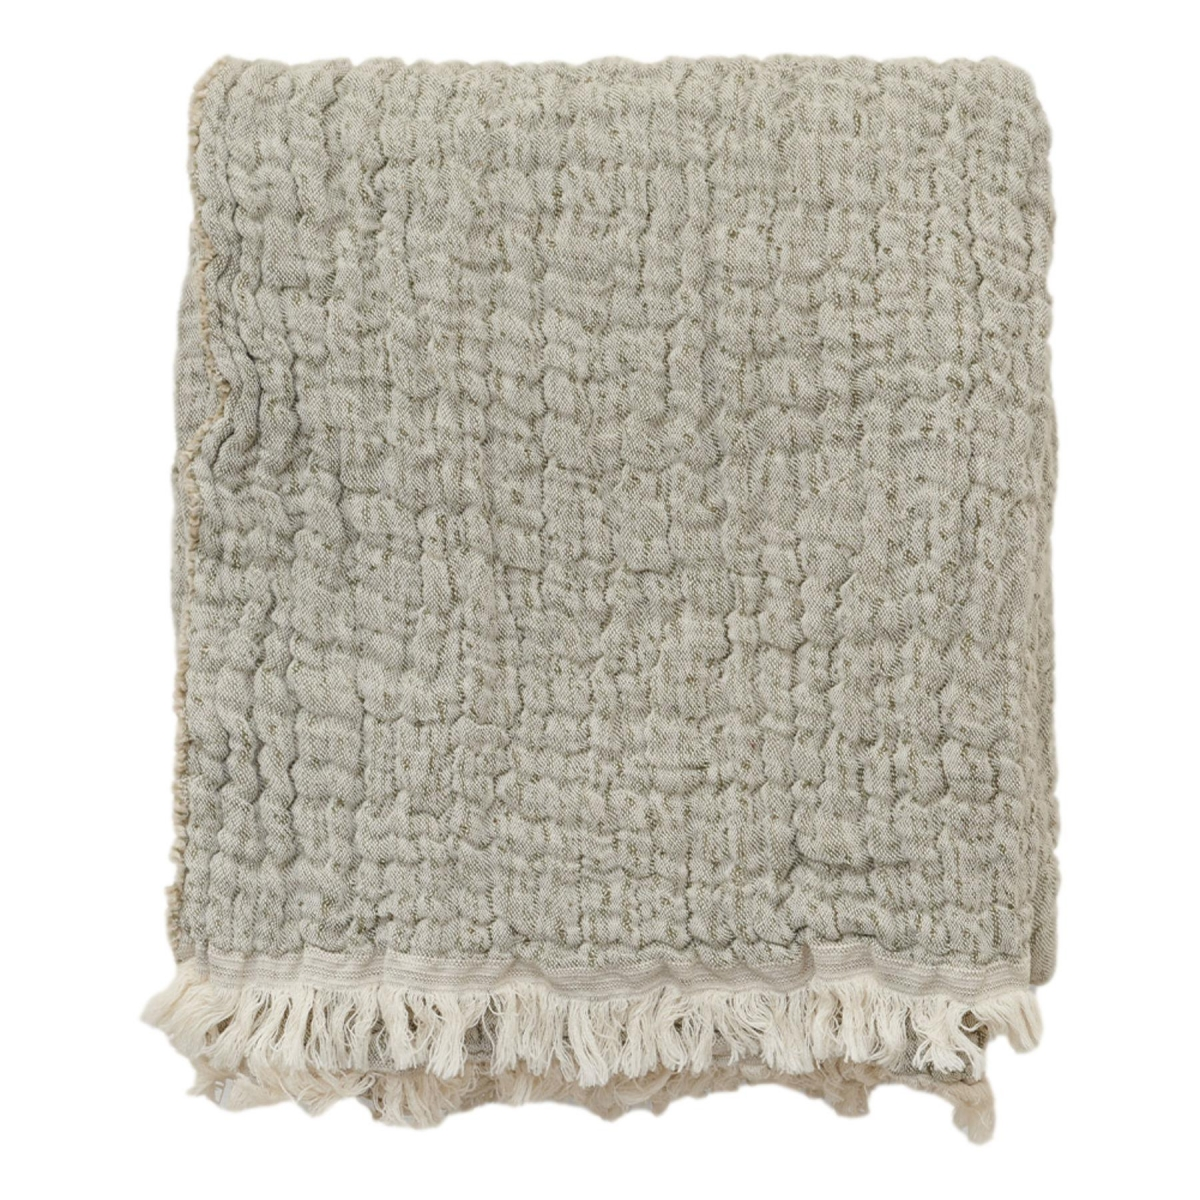 Garbo & Friends Mellow kale Blanket M